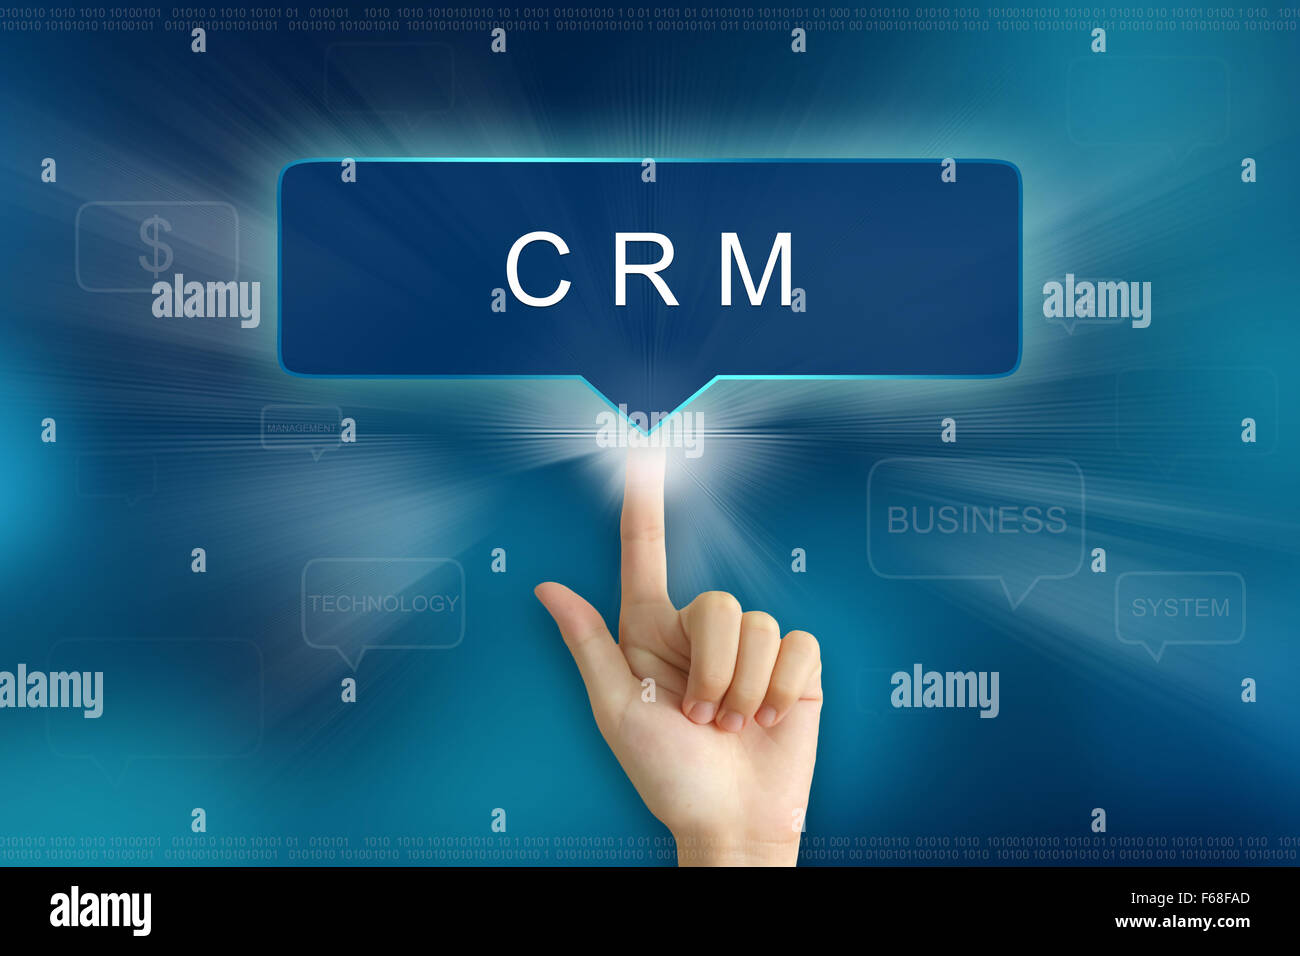 hand pushing on CRM or Customer relationship management balloon text button - Stock Image